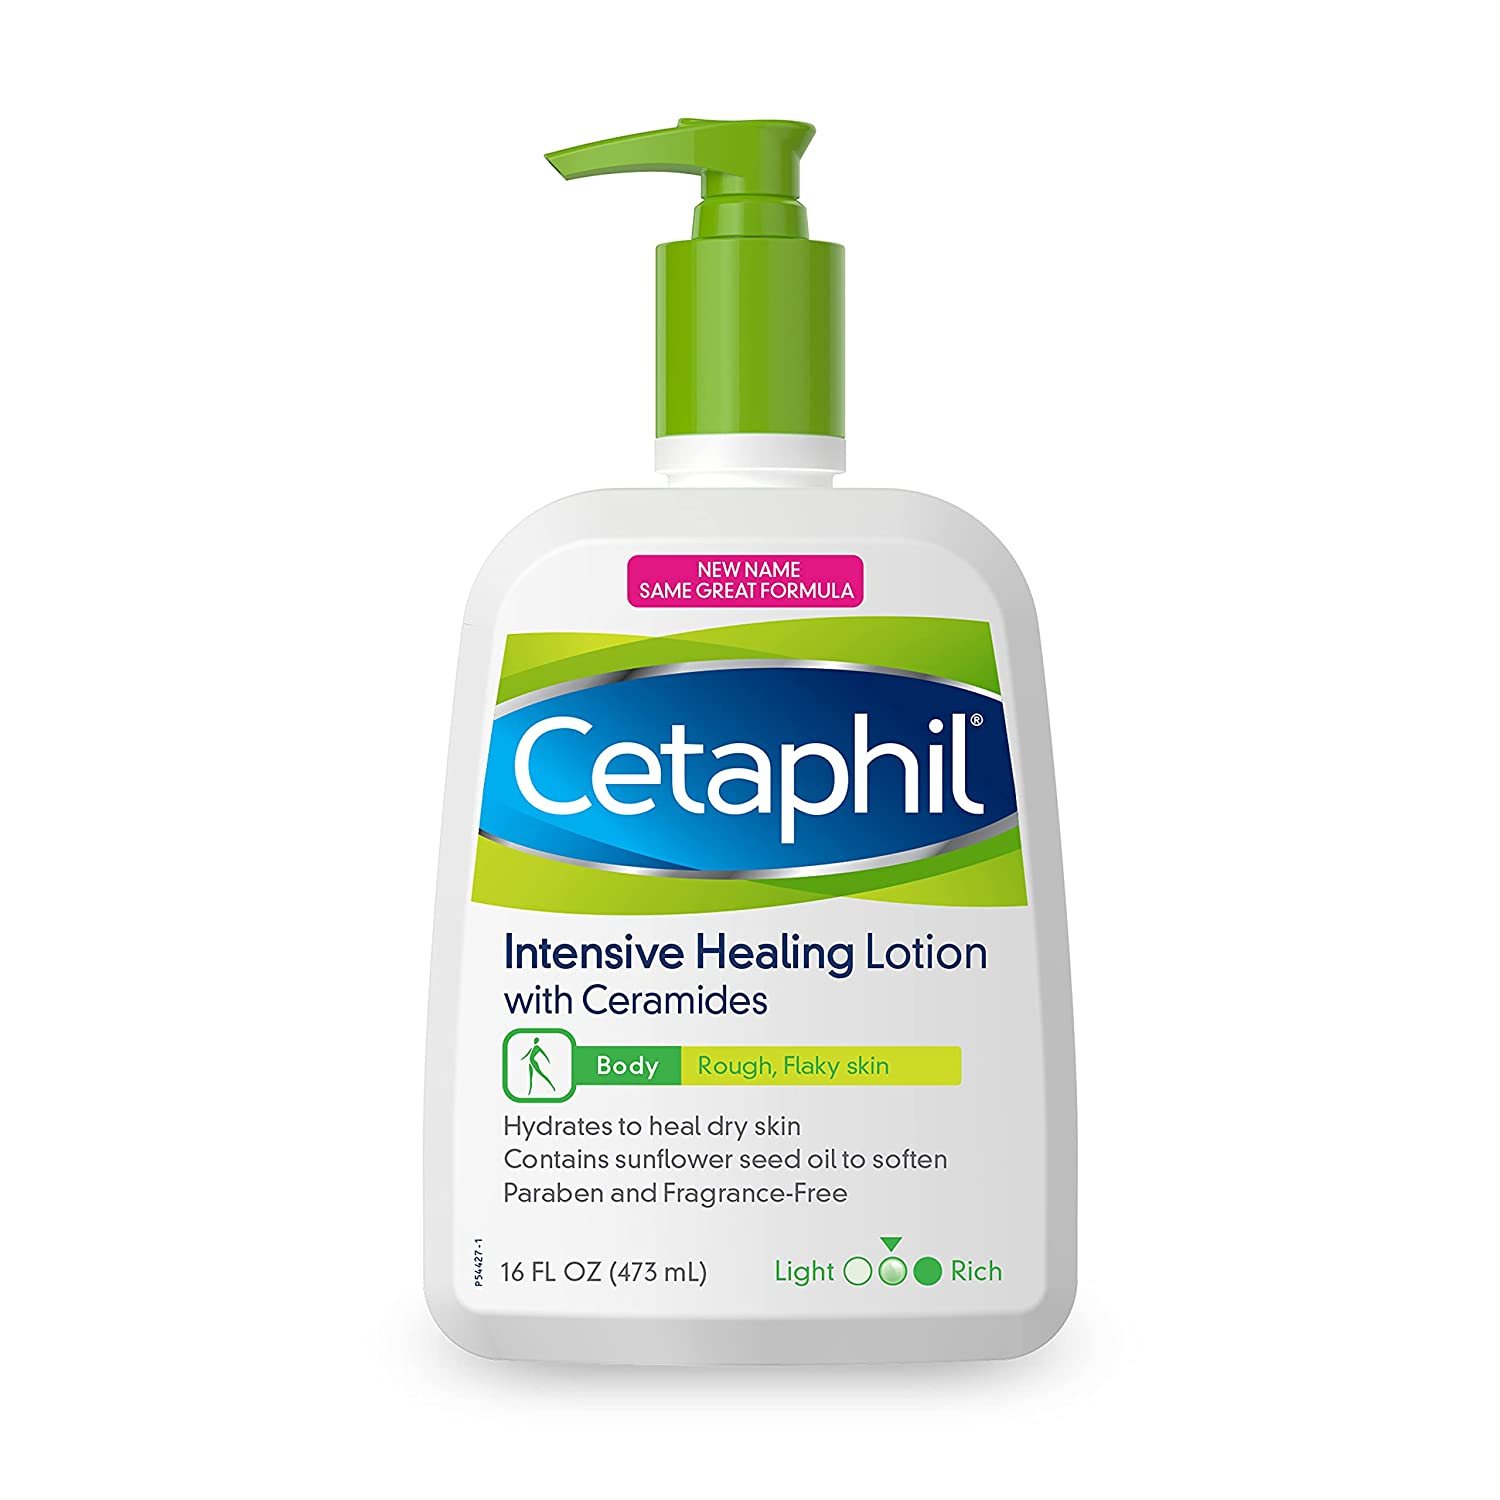 CETAPHIL Intensive Healing Lotion with Ceramides 16 oz For Dry, Rough, Flaky Sensitive Skin 24-Hour Hydration Fragrance, Paraben & Gluten Free Dermatologist : Beauty